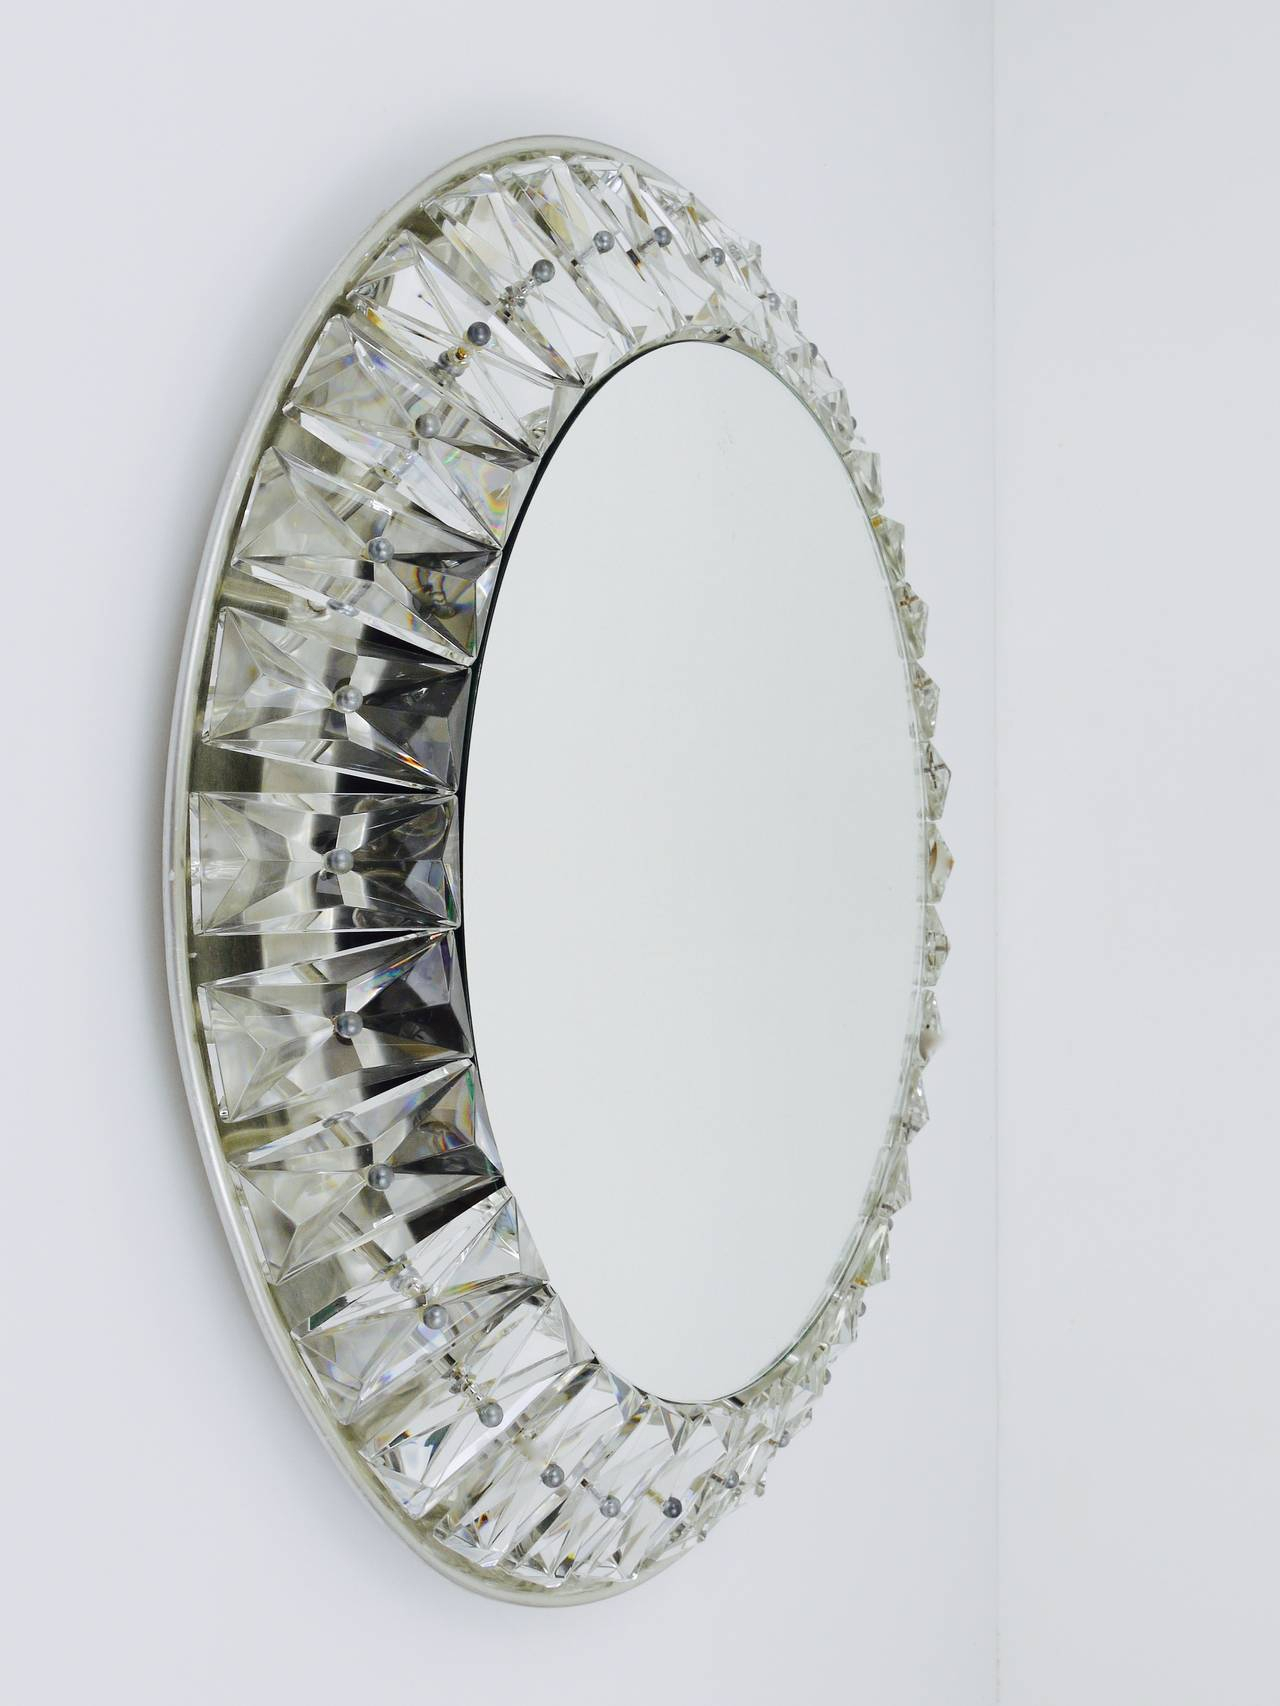 Wall Mirror With Crystals – Home Decorating Ideas & Interior With Regard To Sajish Oval Crystal Wall Mirrors (View 15 of 20)